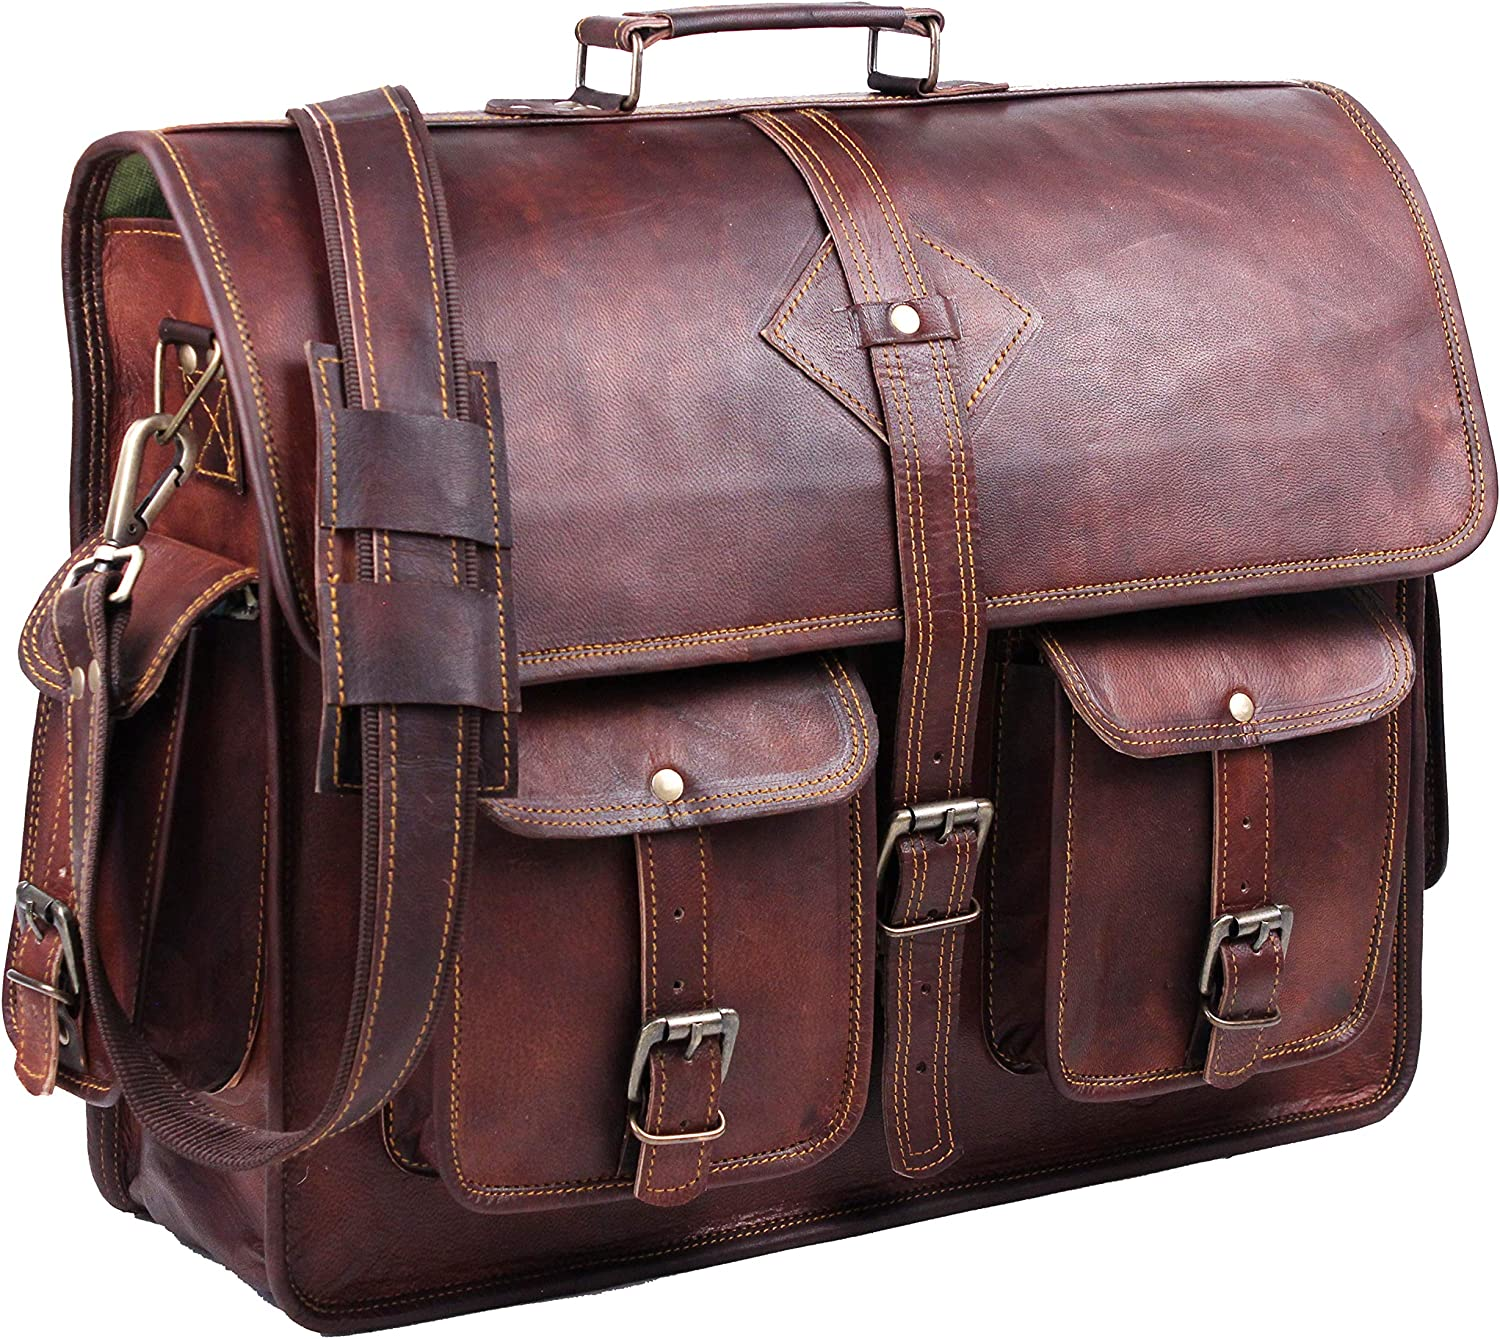 Vintage Leather Laptop Bags for Men Full Grain Large Leather Messenger bag for men 18 inches with rustic look Best leather briefcase by Hulsh